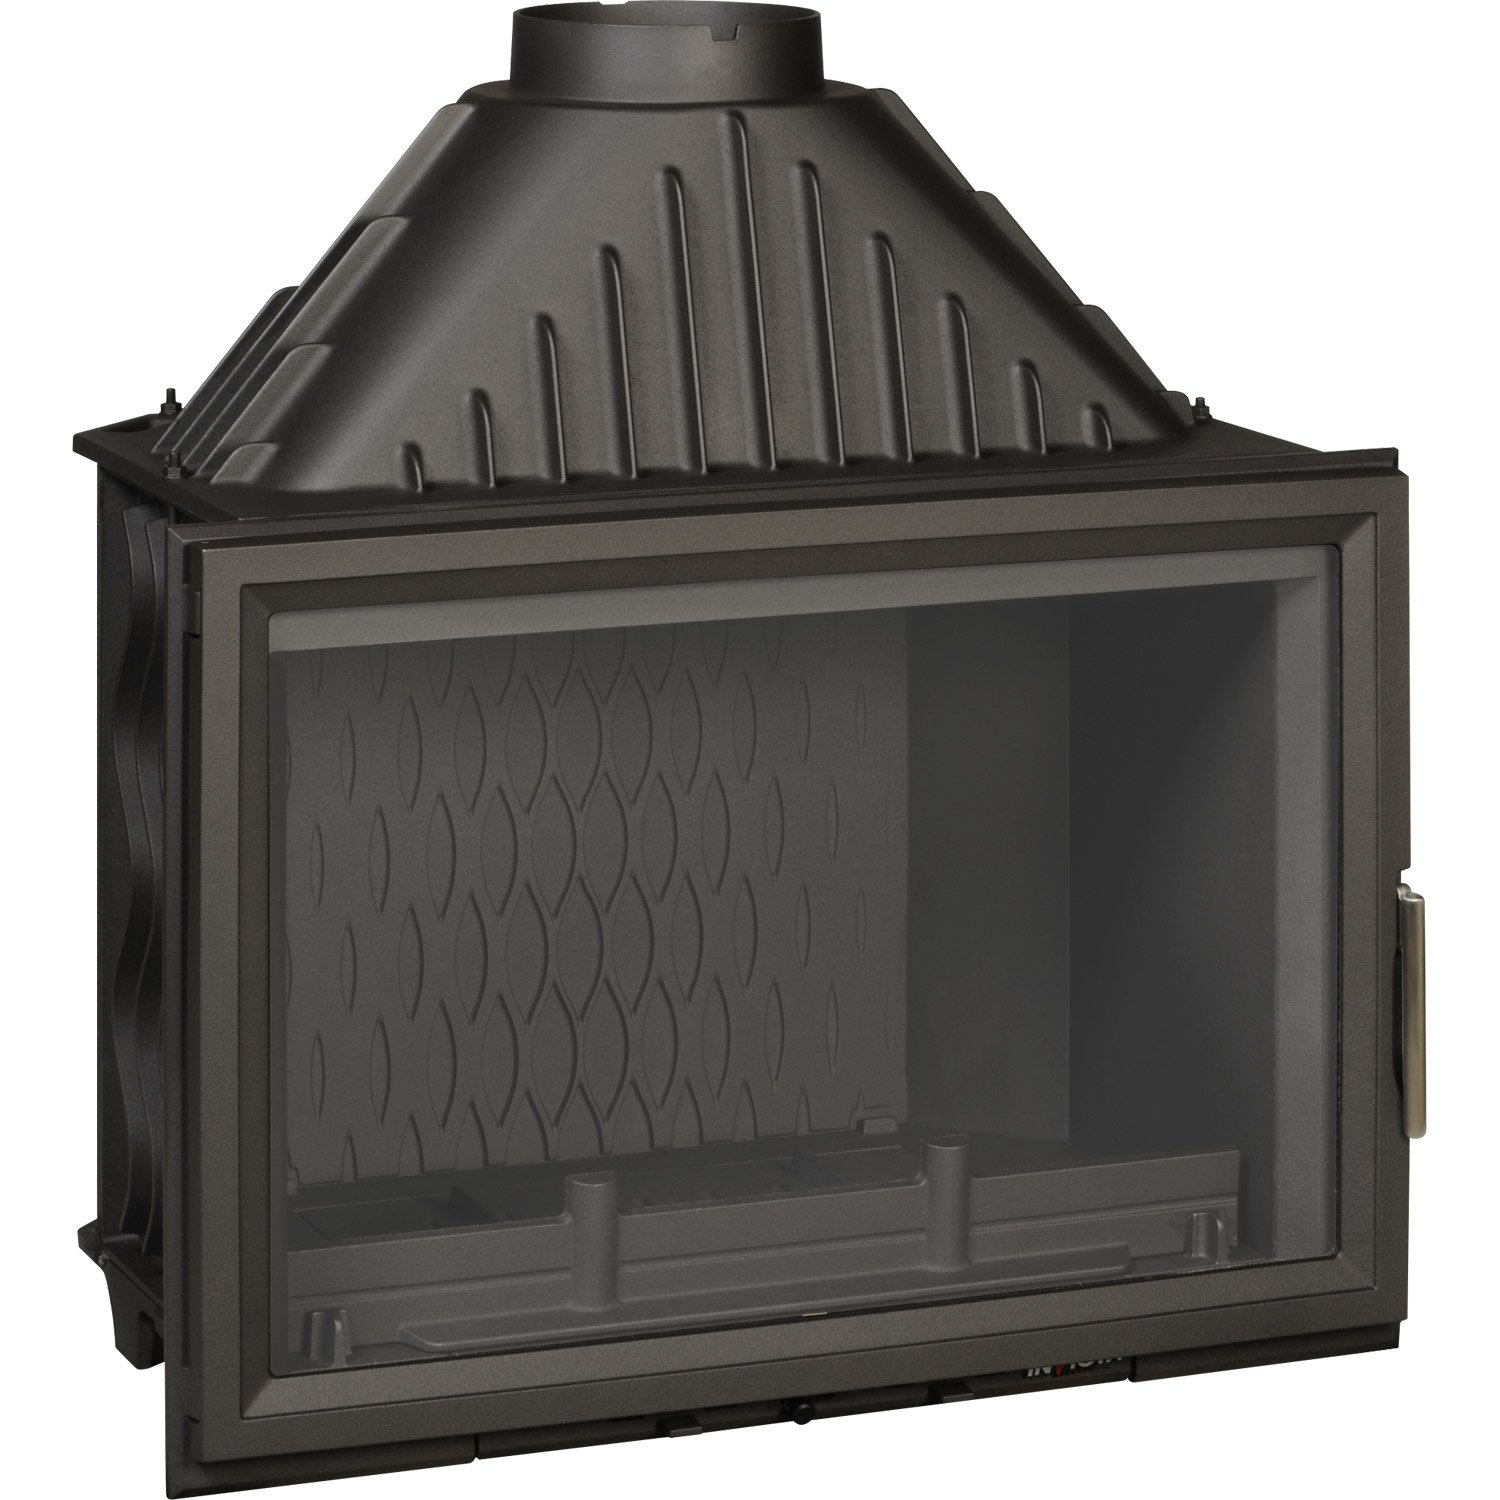 Foyer bois fa ade droite invicta 6280 44 14 kw leroy for Foyer exterieur a donner